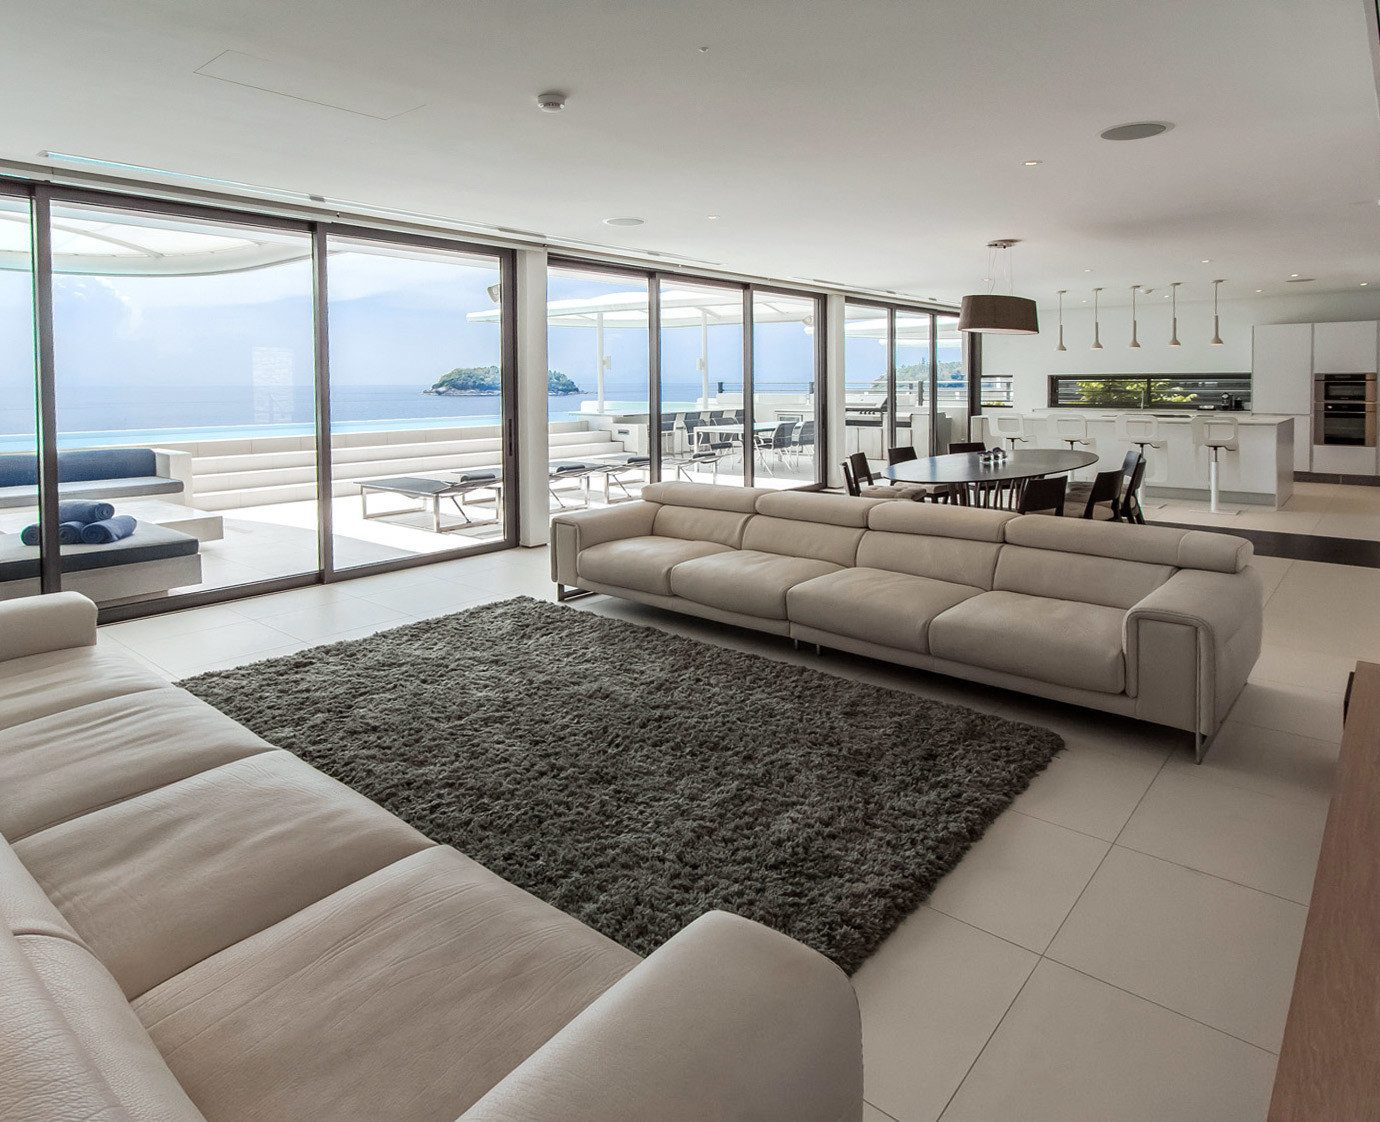 Beachfront Dining Hip Kitchen Luxury Modern Party Scenic views Suite sofa property condominium yacht living room passenger ship home vehicle Villa cottage overlooking